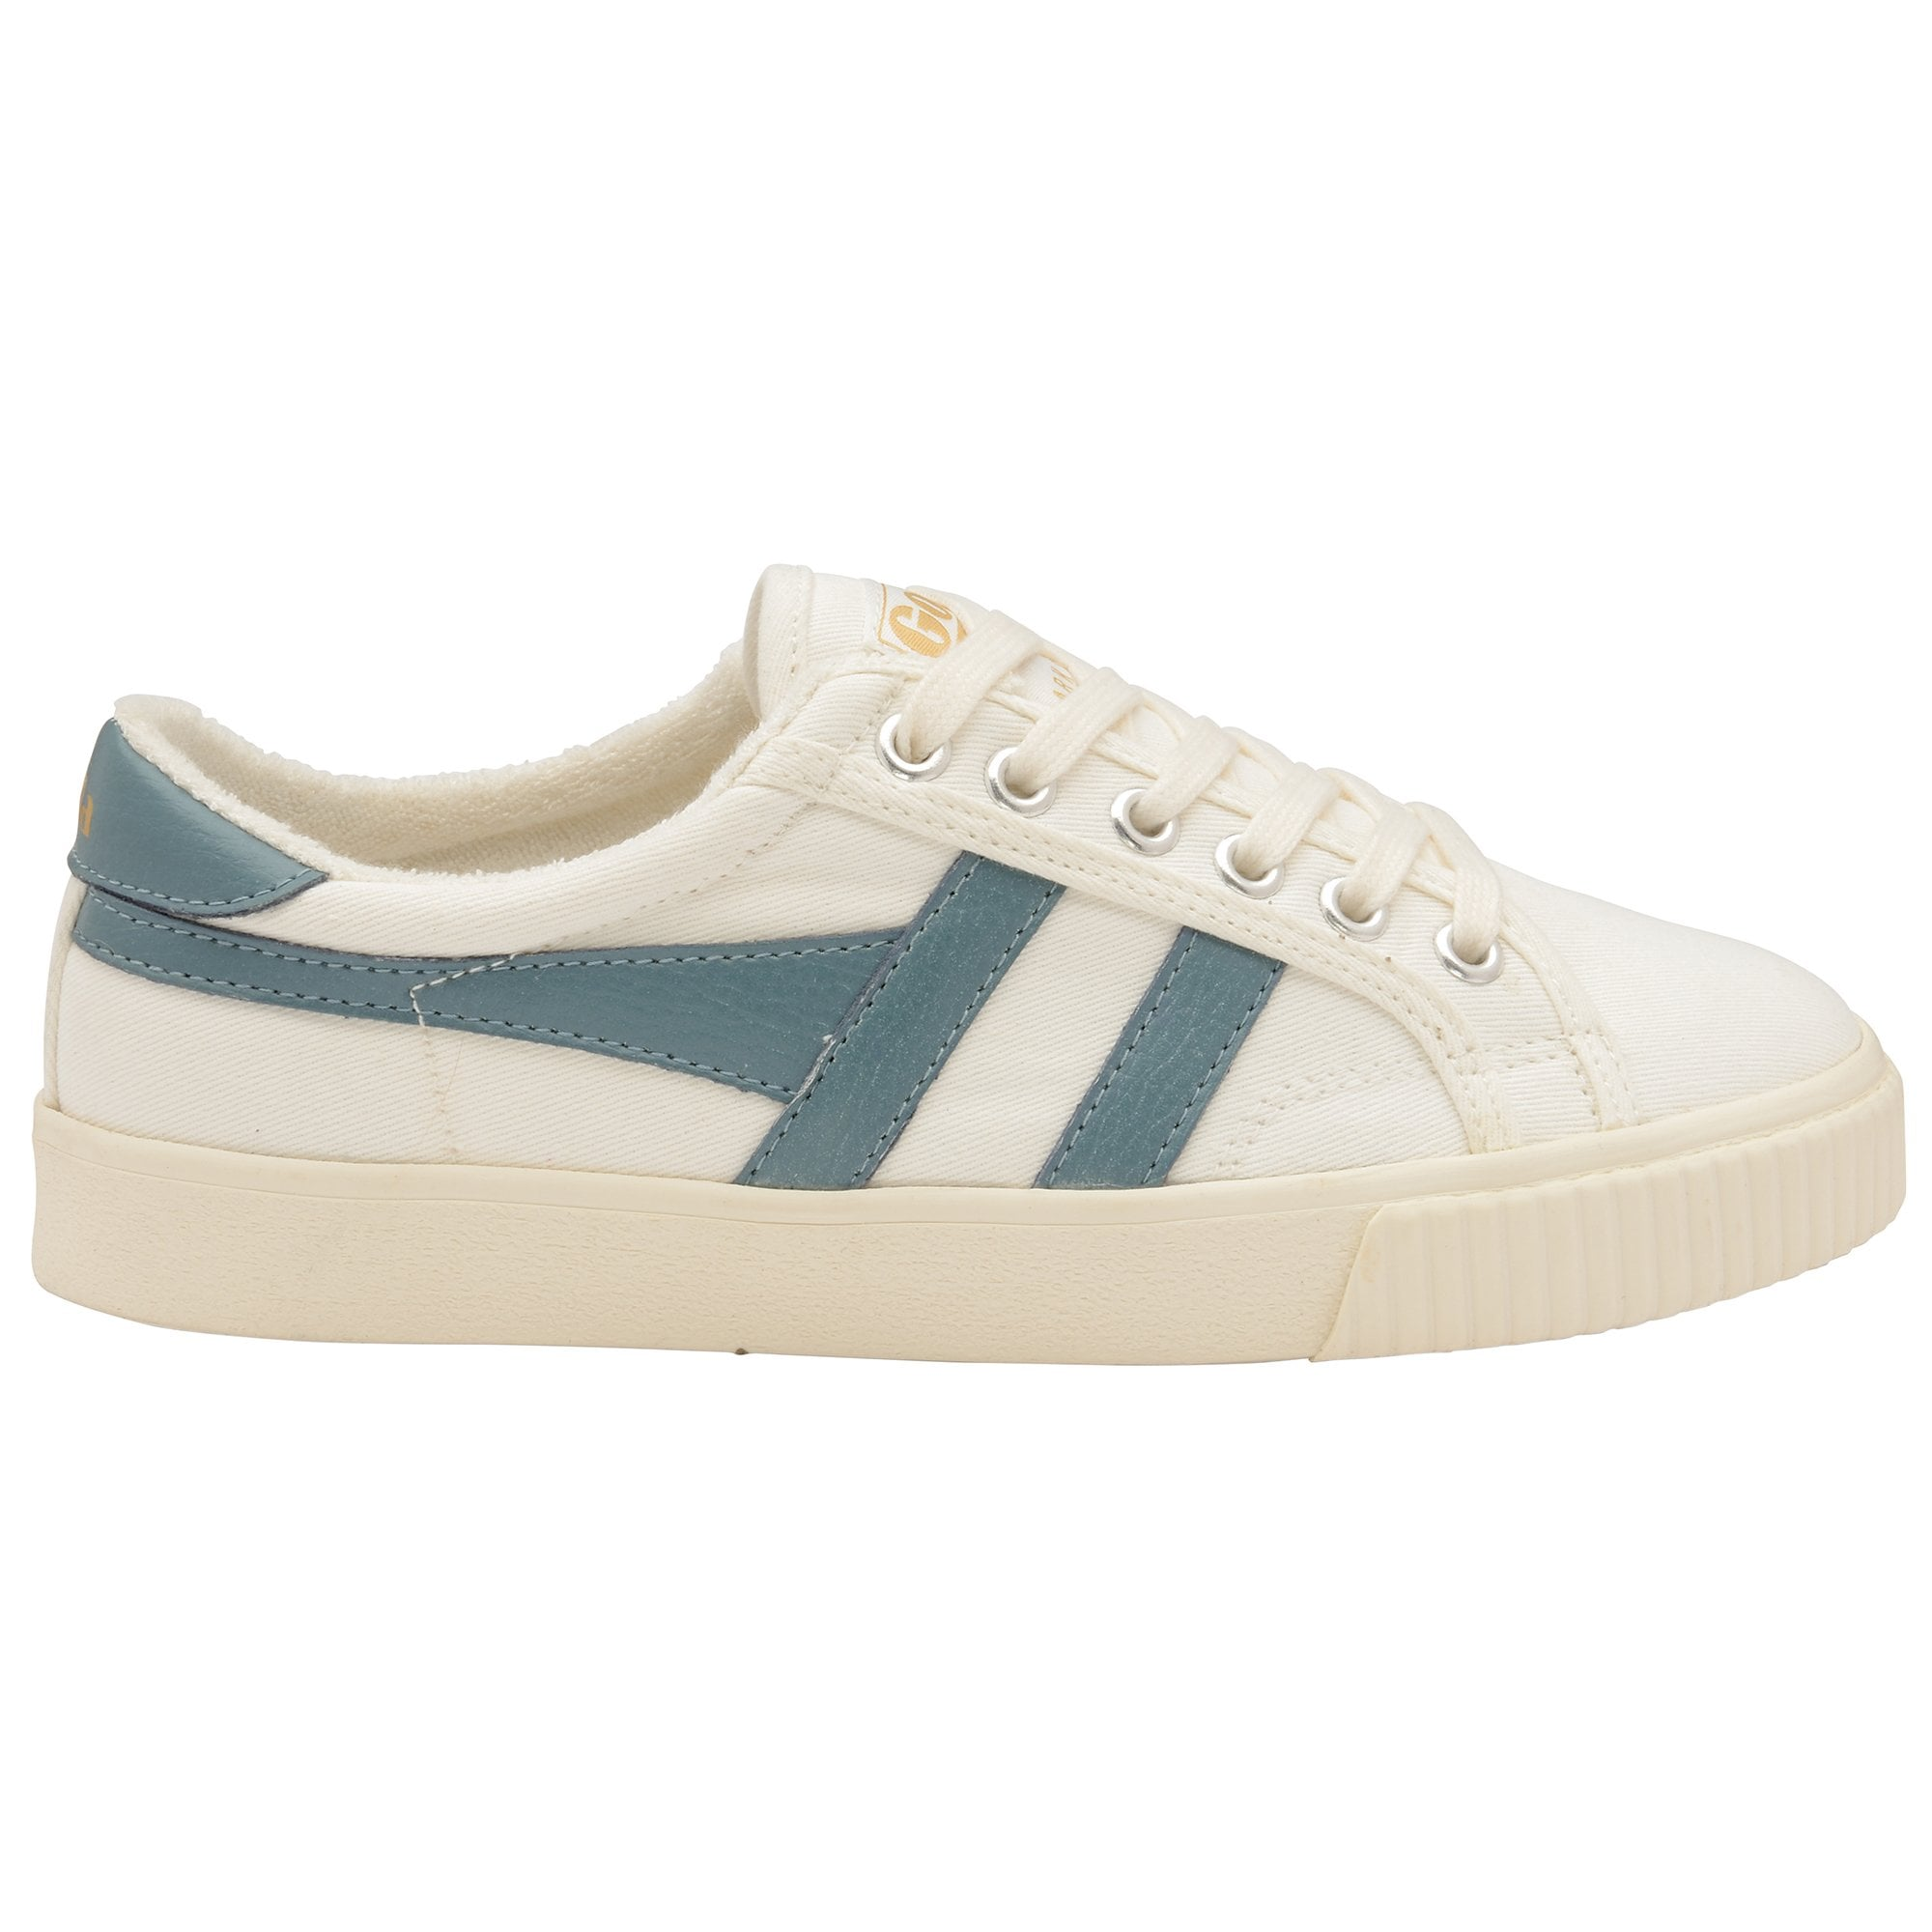 buy womens trainers online